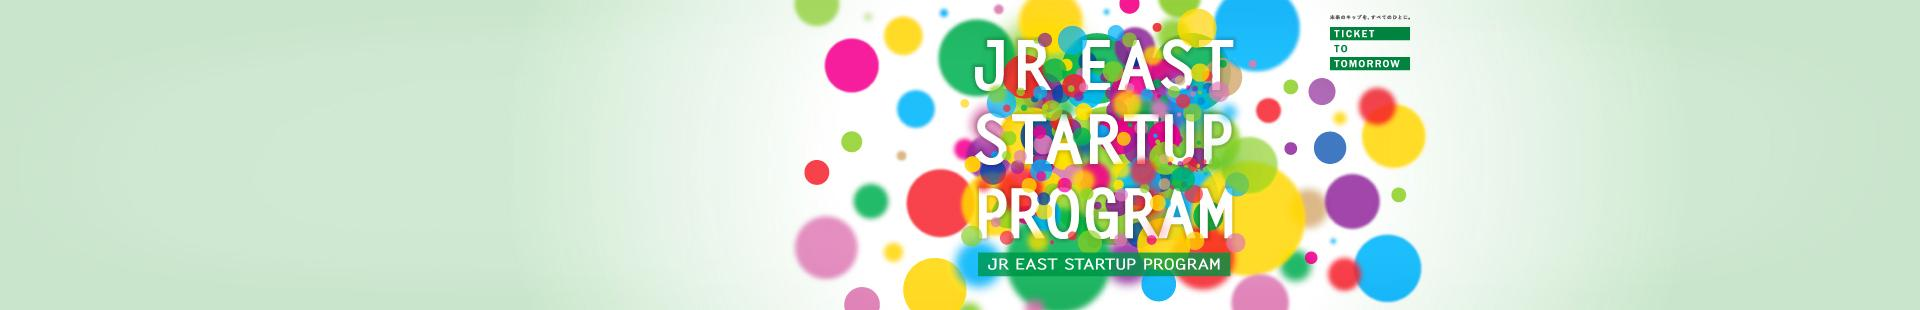 JR EAST STARTUP PROGRAM